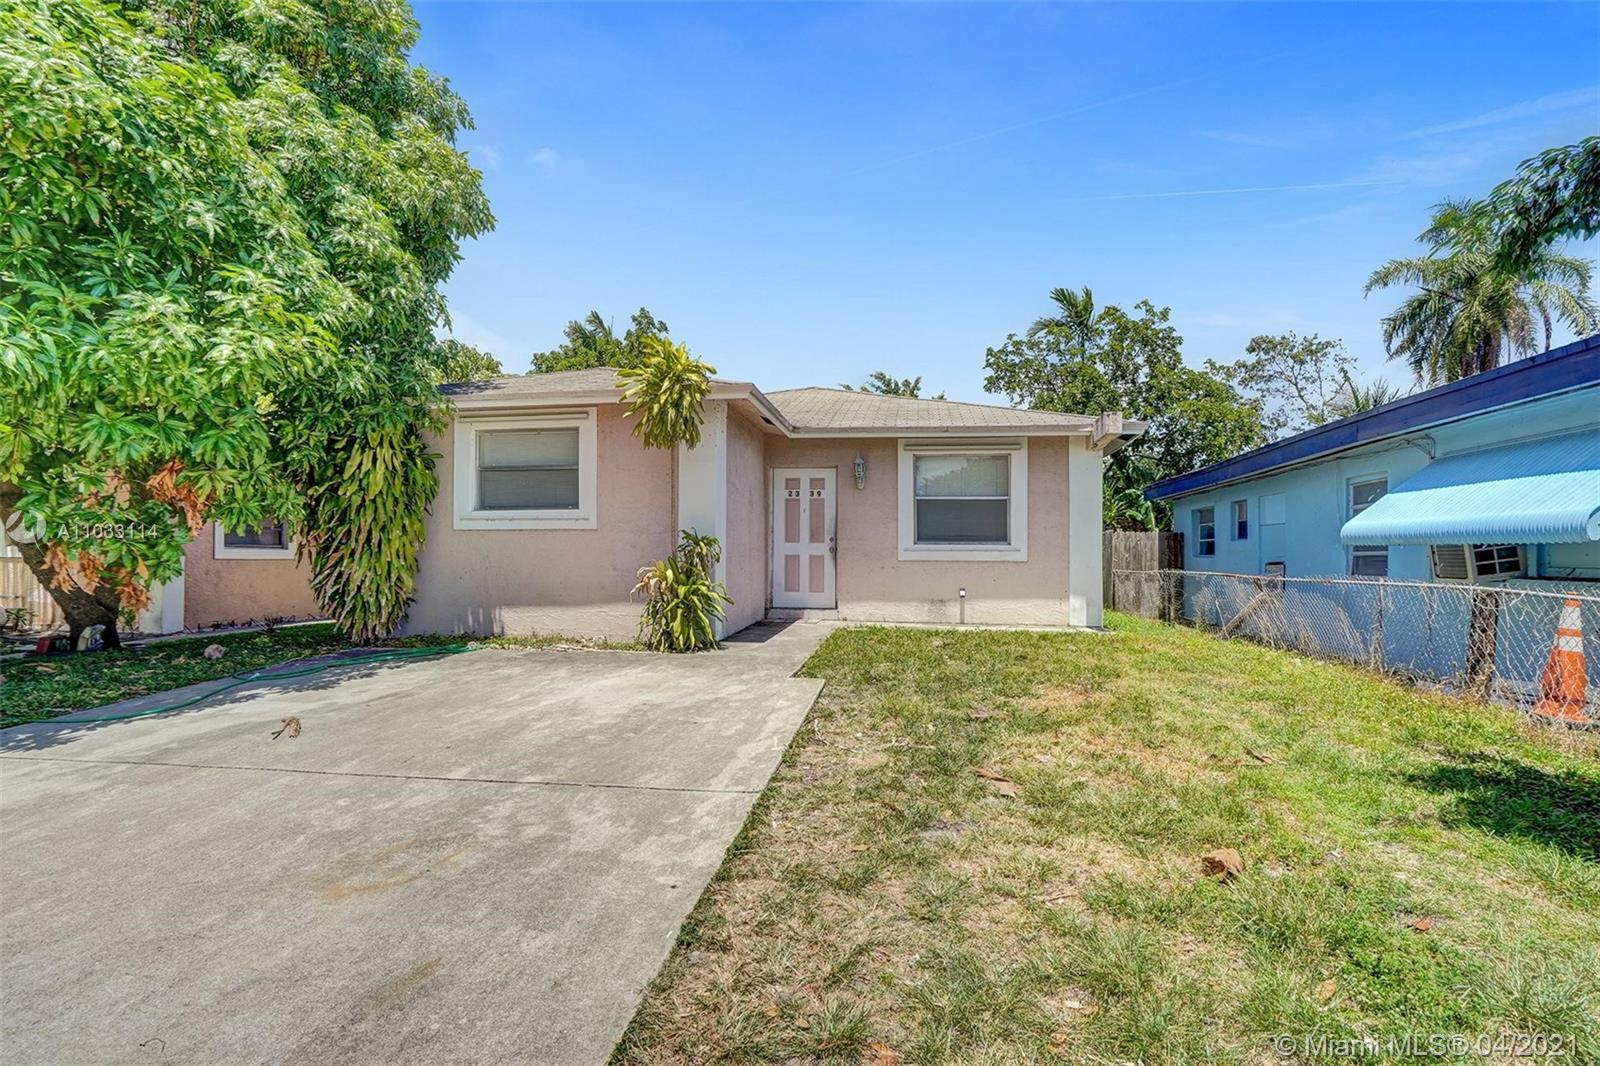 BACK IN THE MARKET!!! WELL MAINTAINED 4/3! VERY SPACIOUS, FRESHLY PAINTED. TENANT IS MONTH TO MONTH.